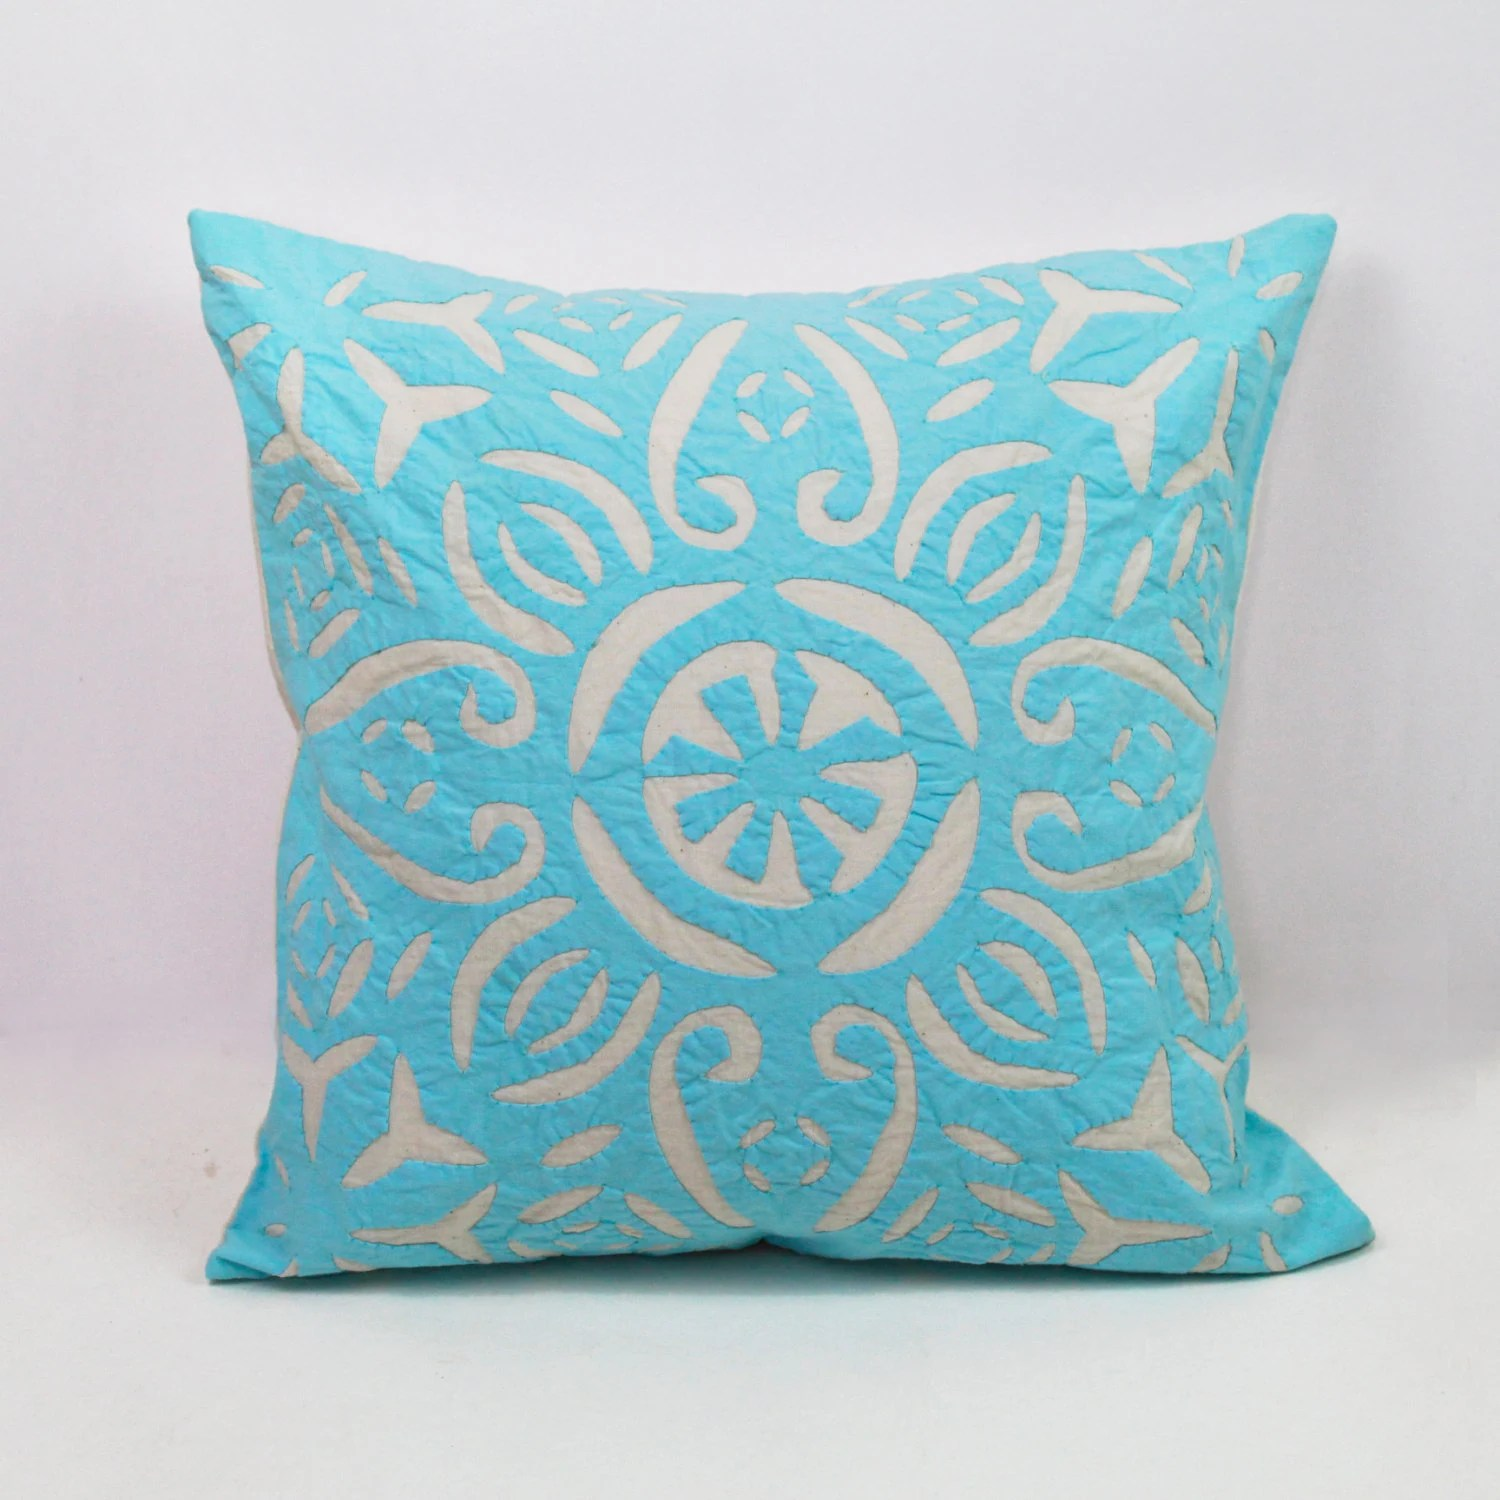 Best Blue And White Pillows Handmade Pillows Decorative By This Month